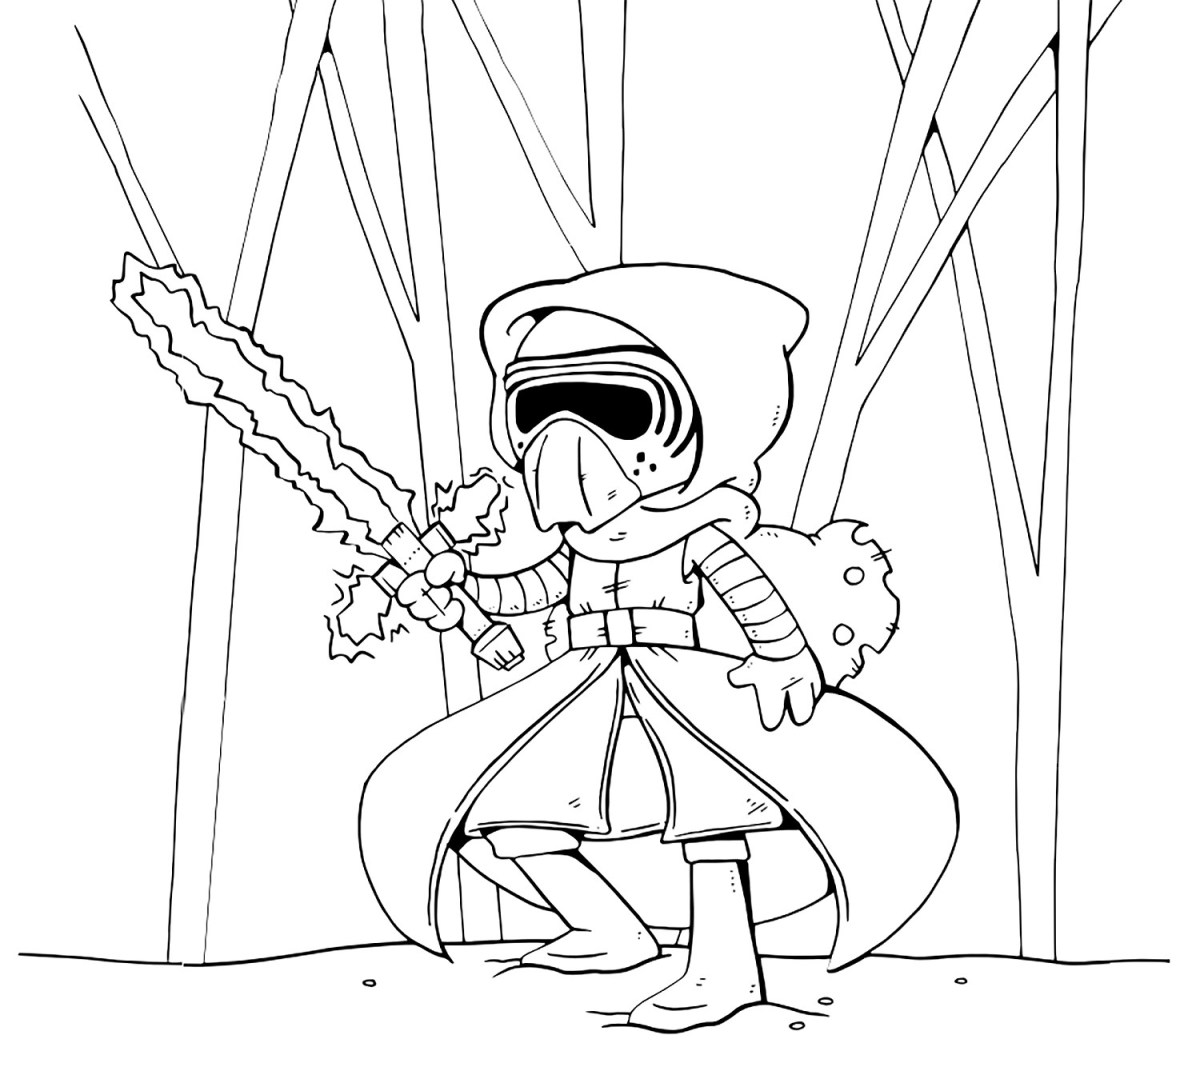 Kylo Ren Coloring Page Kylo Ren In Star Wars The Last Jedi Coloring Pages Get Coloring